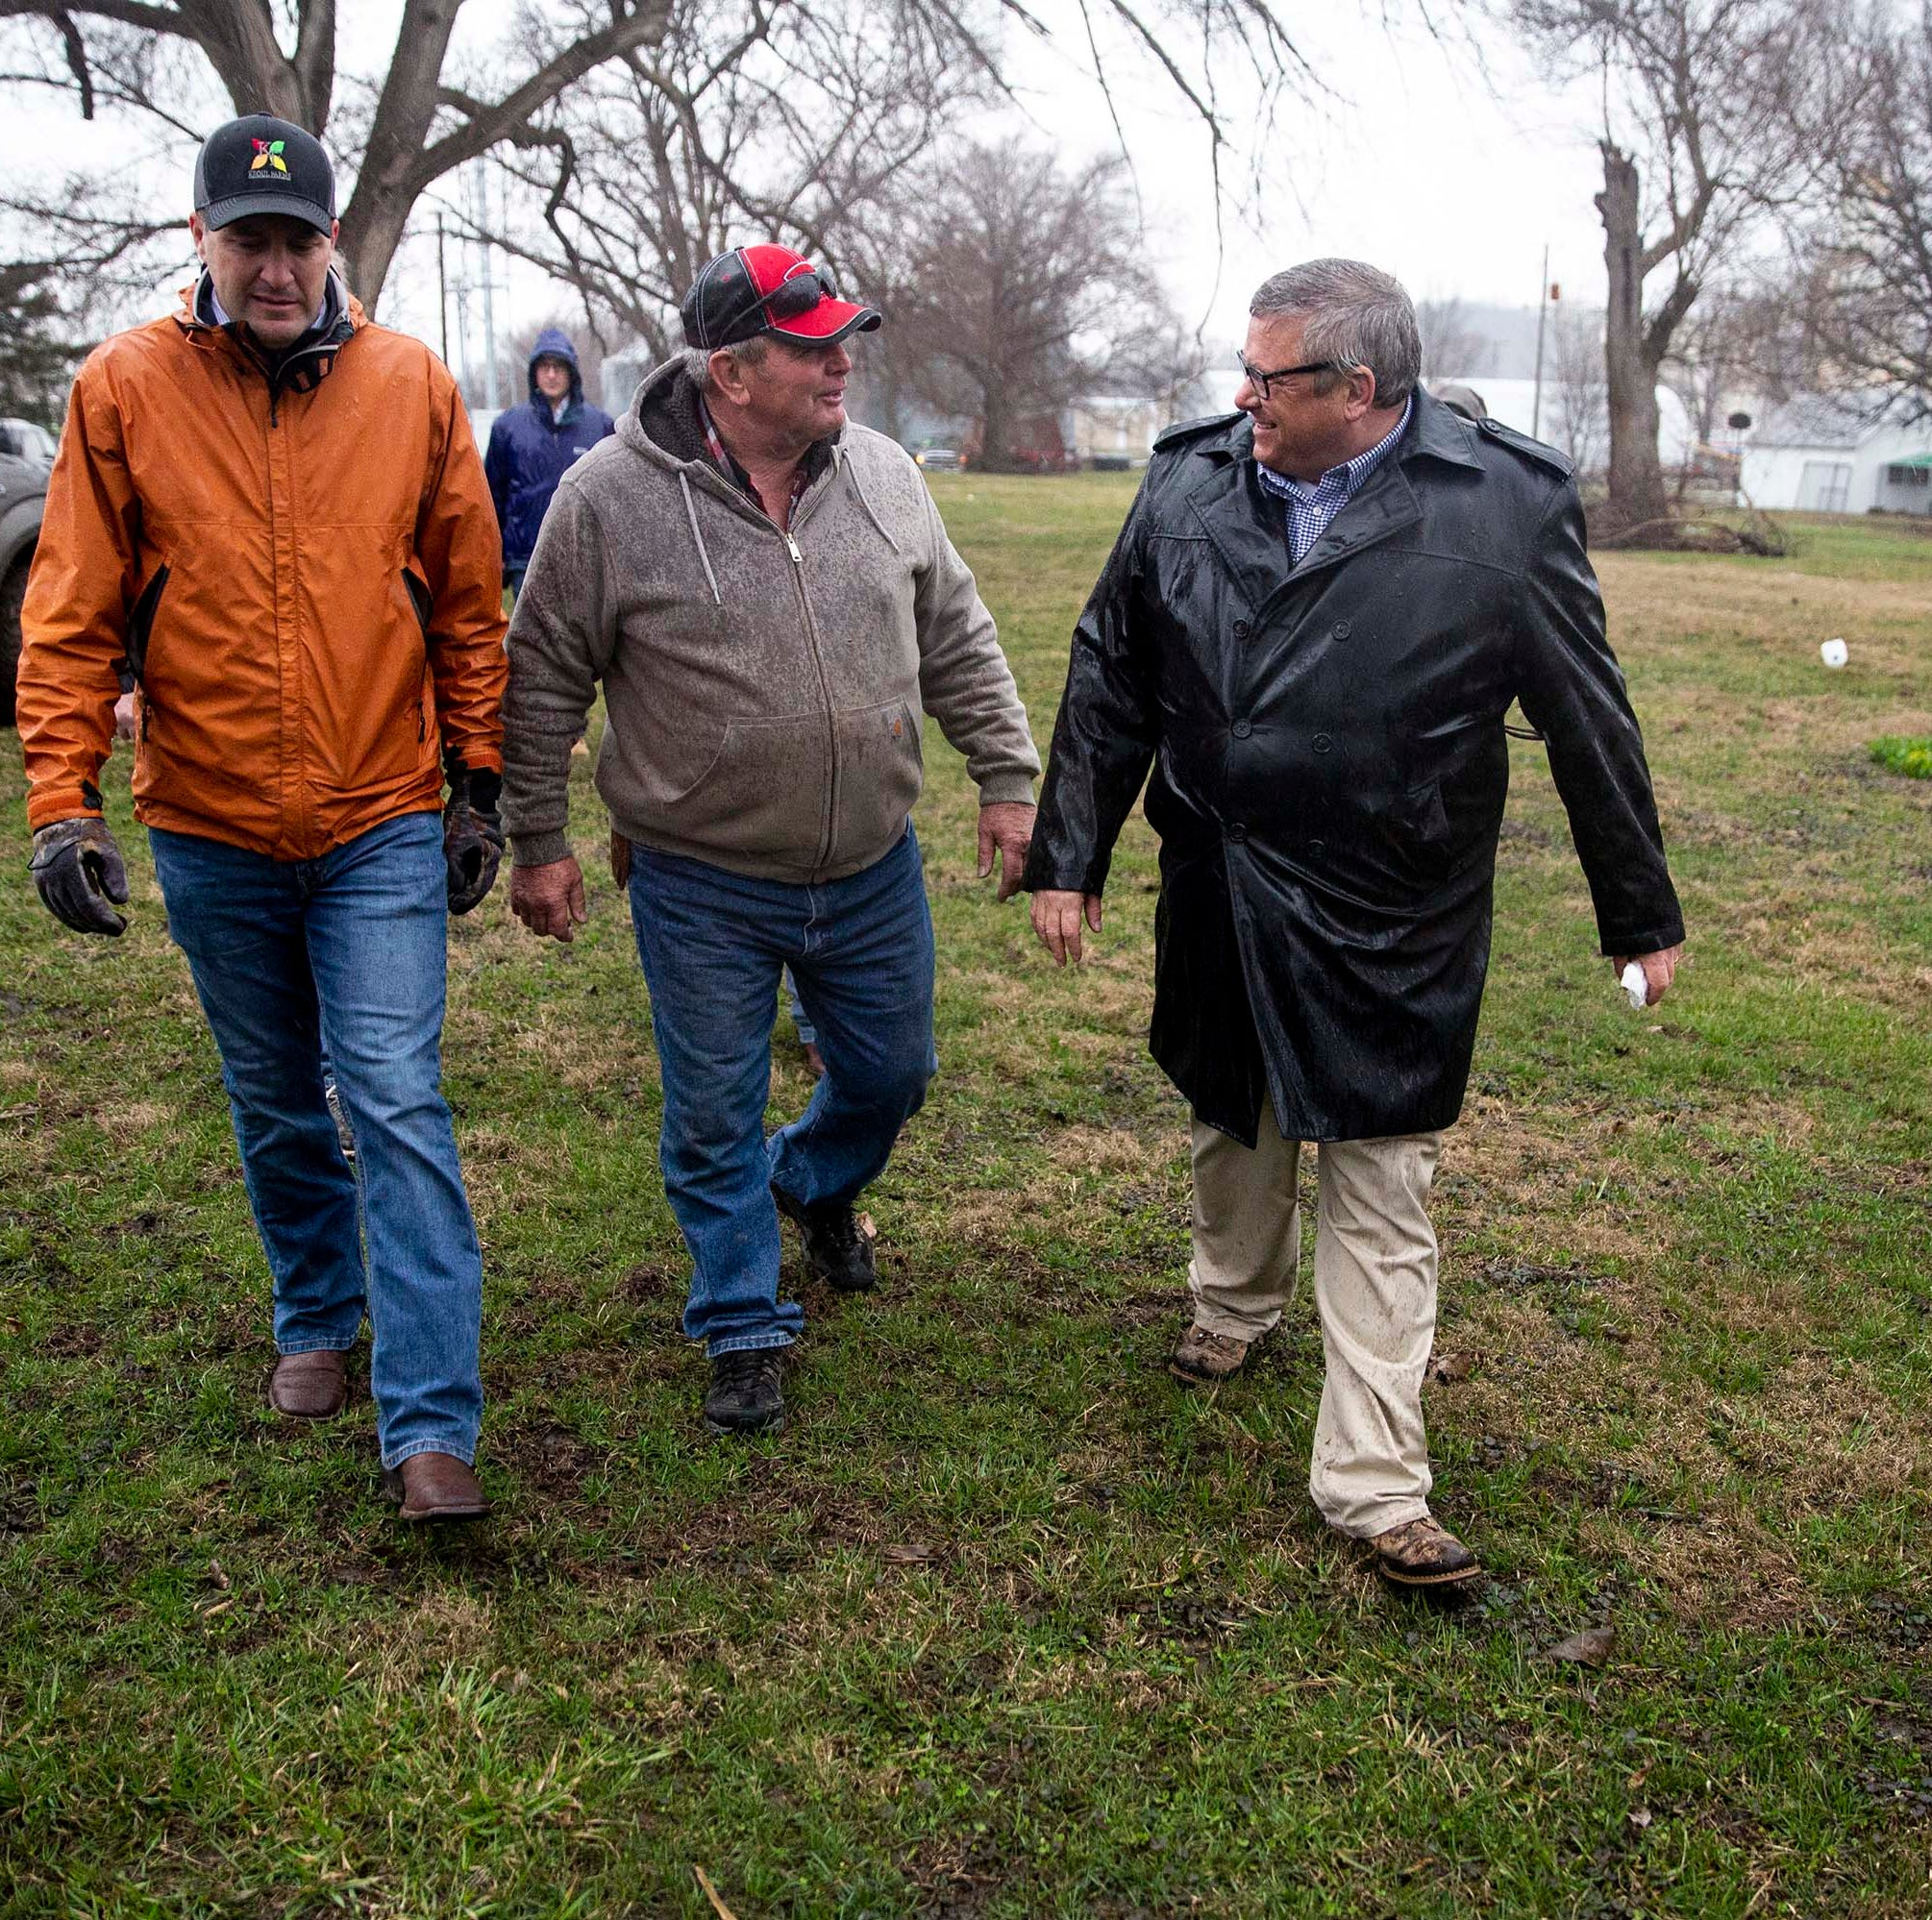 Flooded-out farmers tell ag leaders it will be hard to recover without federal assistance